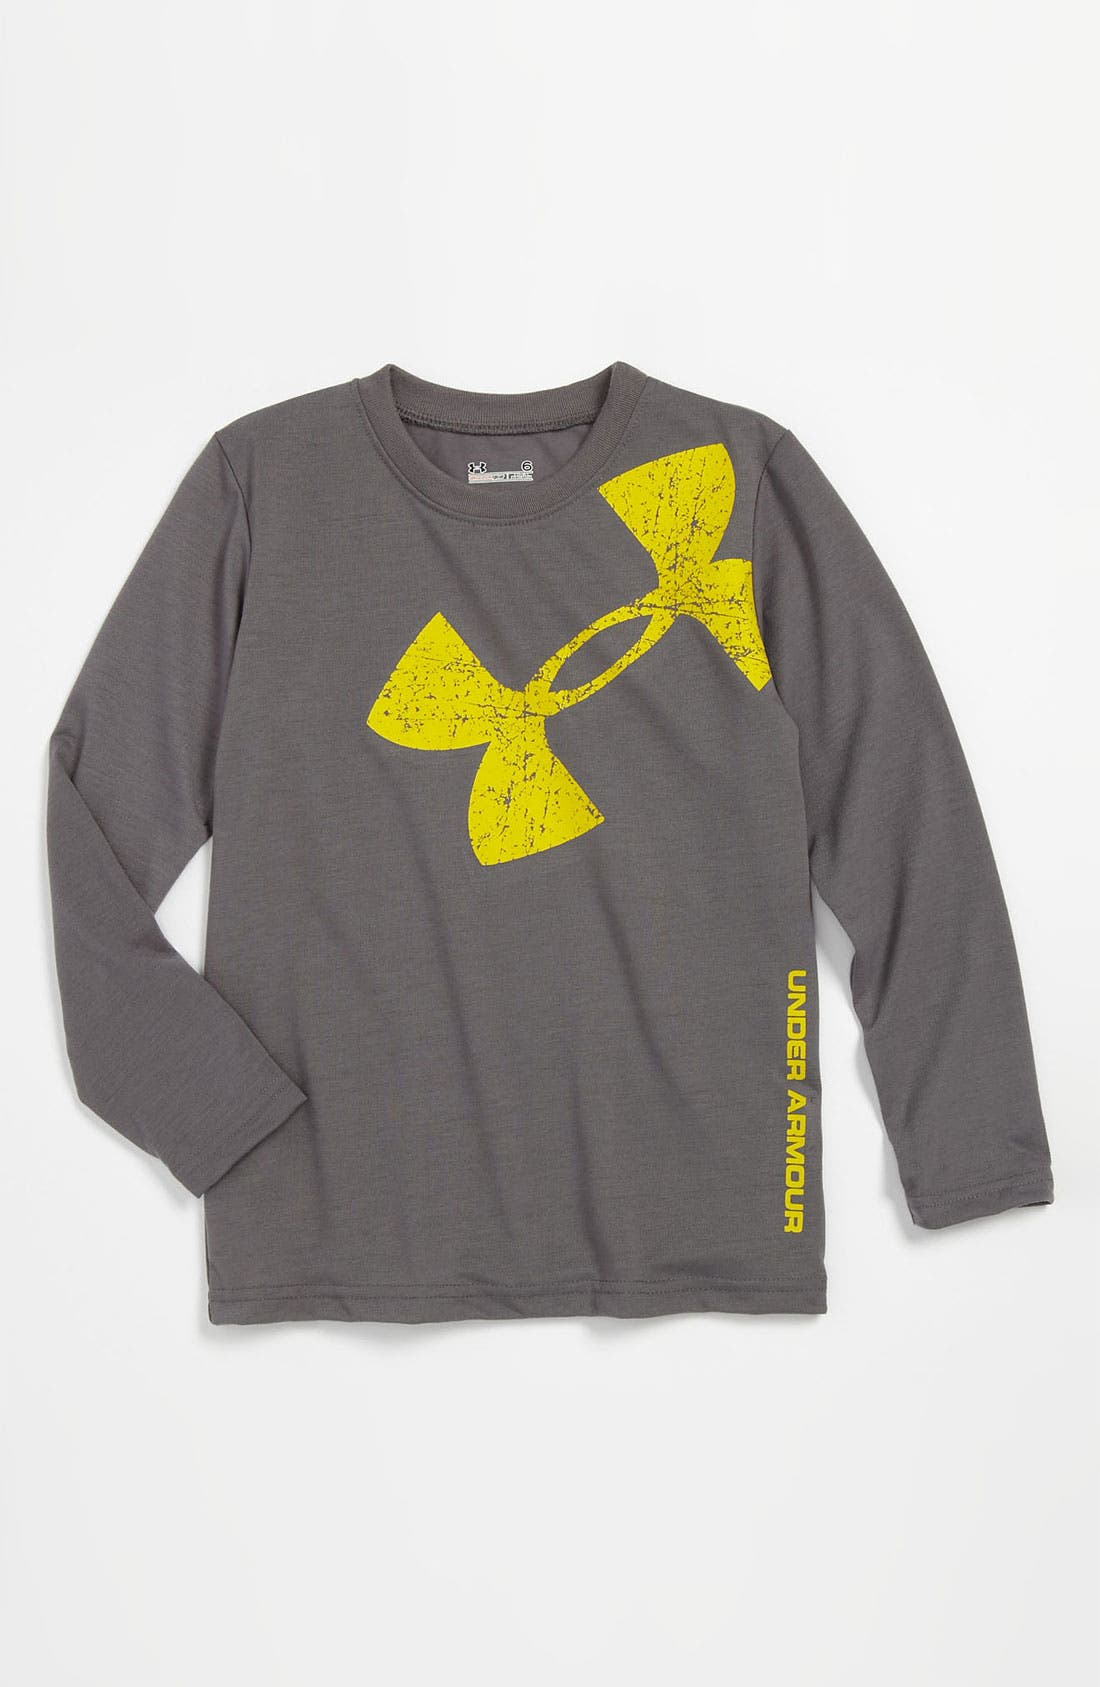 Alternate Image 1 Selected - Under Armour 'Big Icon' All Season Gear® T-Shirt (Little Boys)